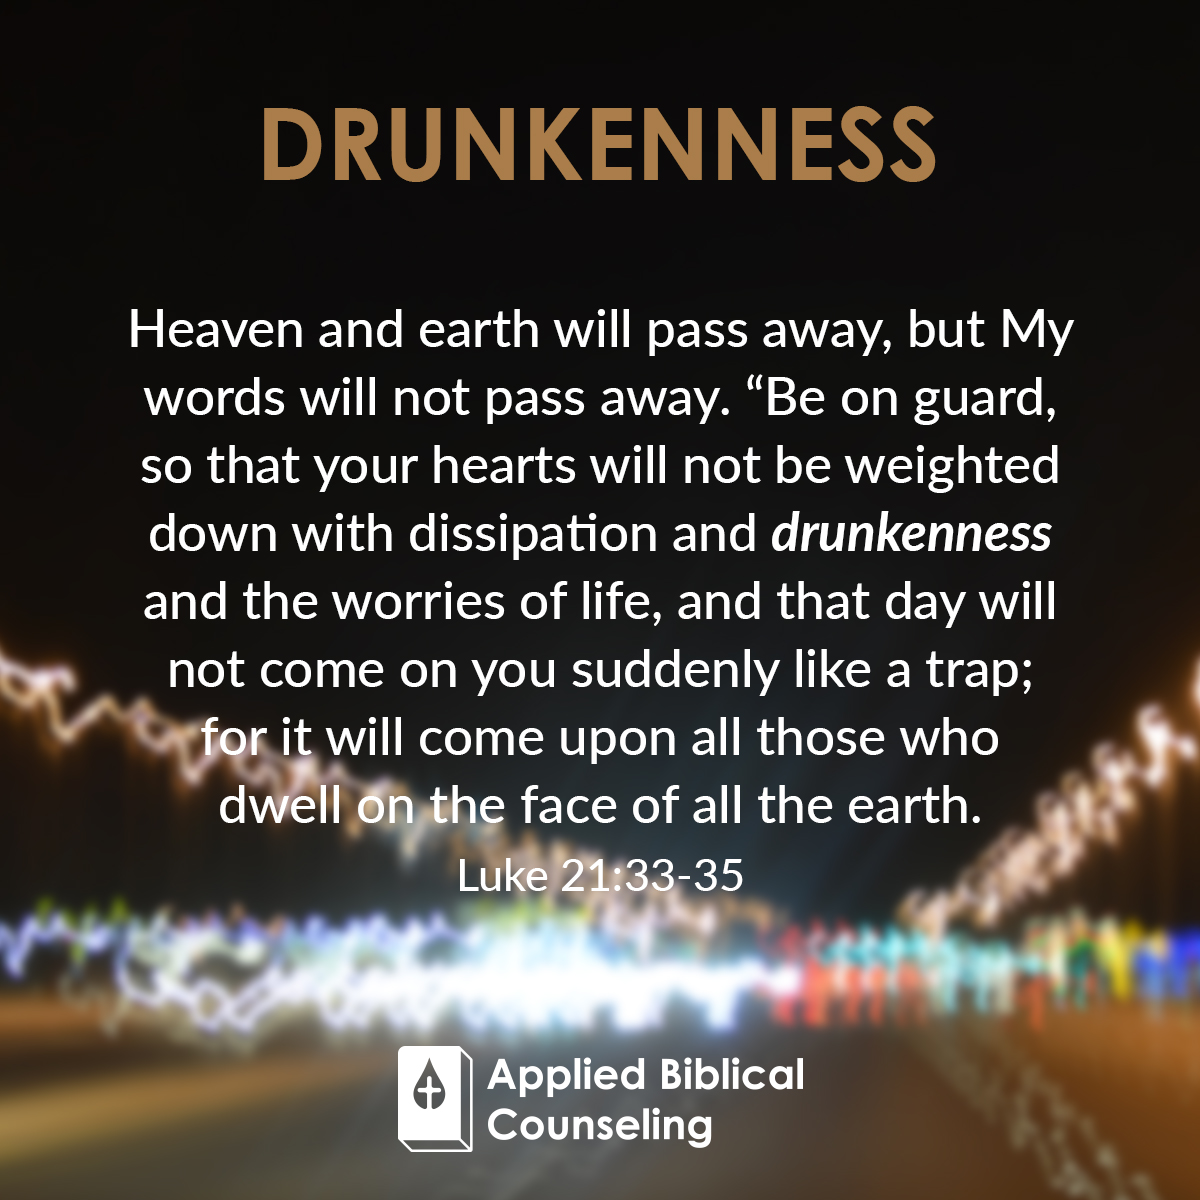 Applied Biblical Counseling Facebook w18 Drunkenness 3